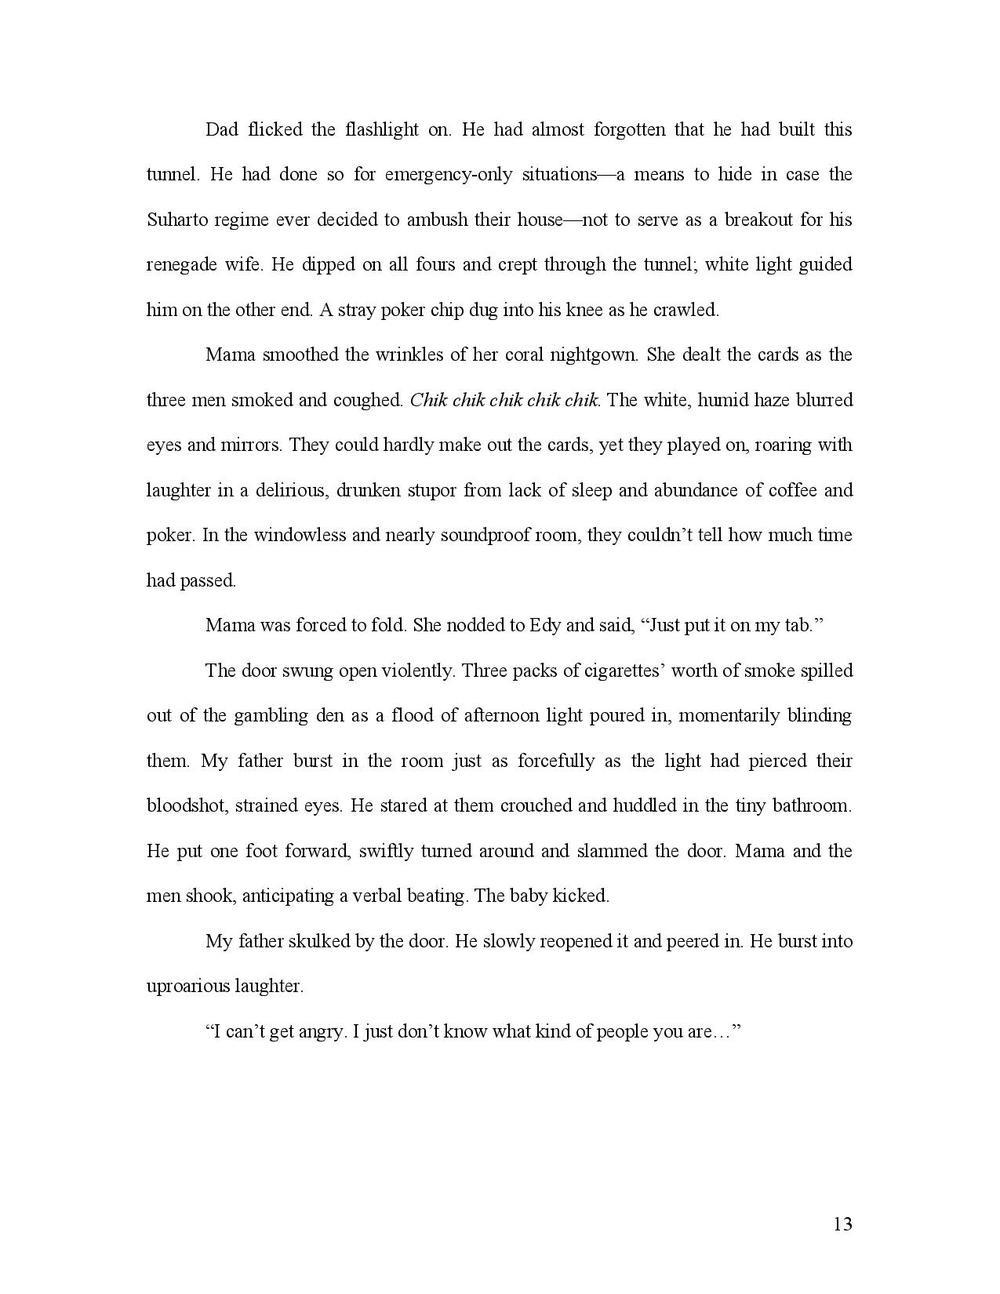 In The Cards_edit_excerpt-page-013.jpg